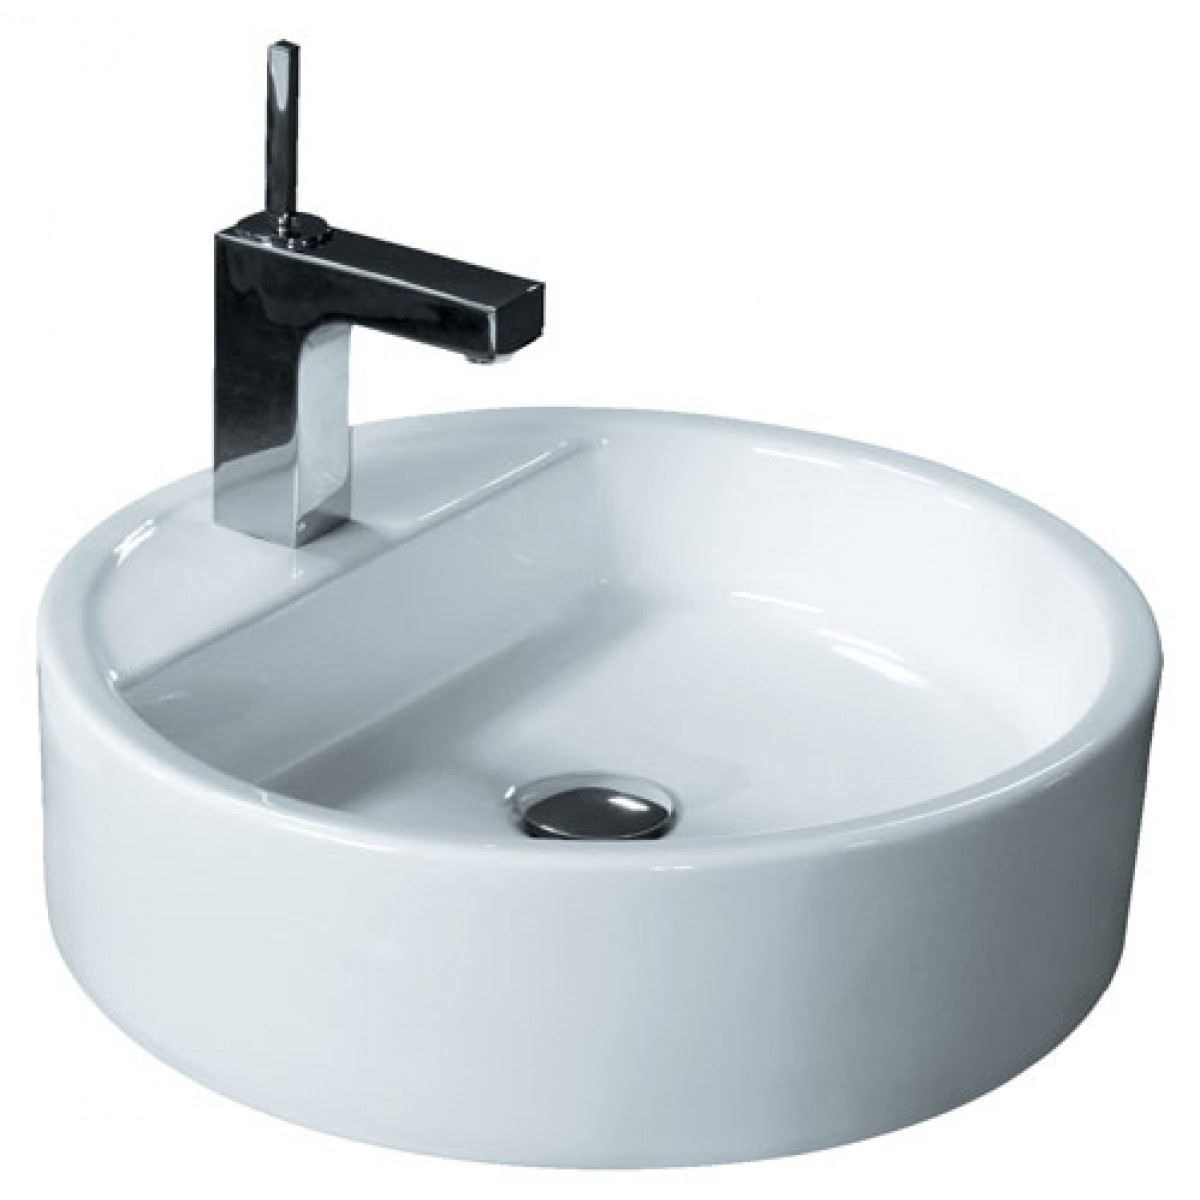 Round Porcelain Ceramic Single Hole Countertop Bathroom